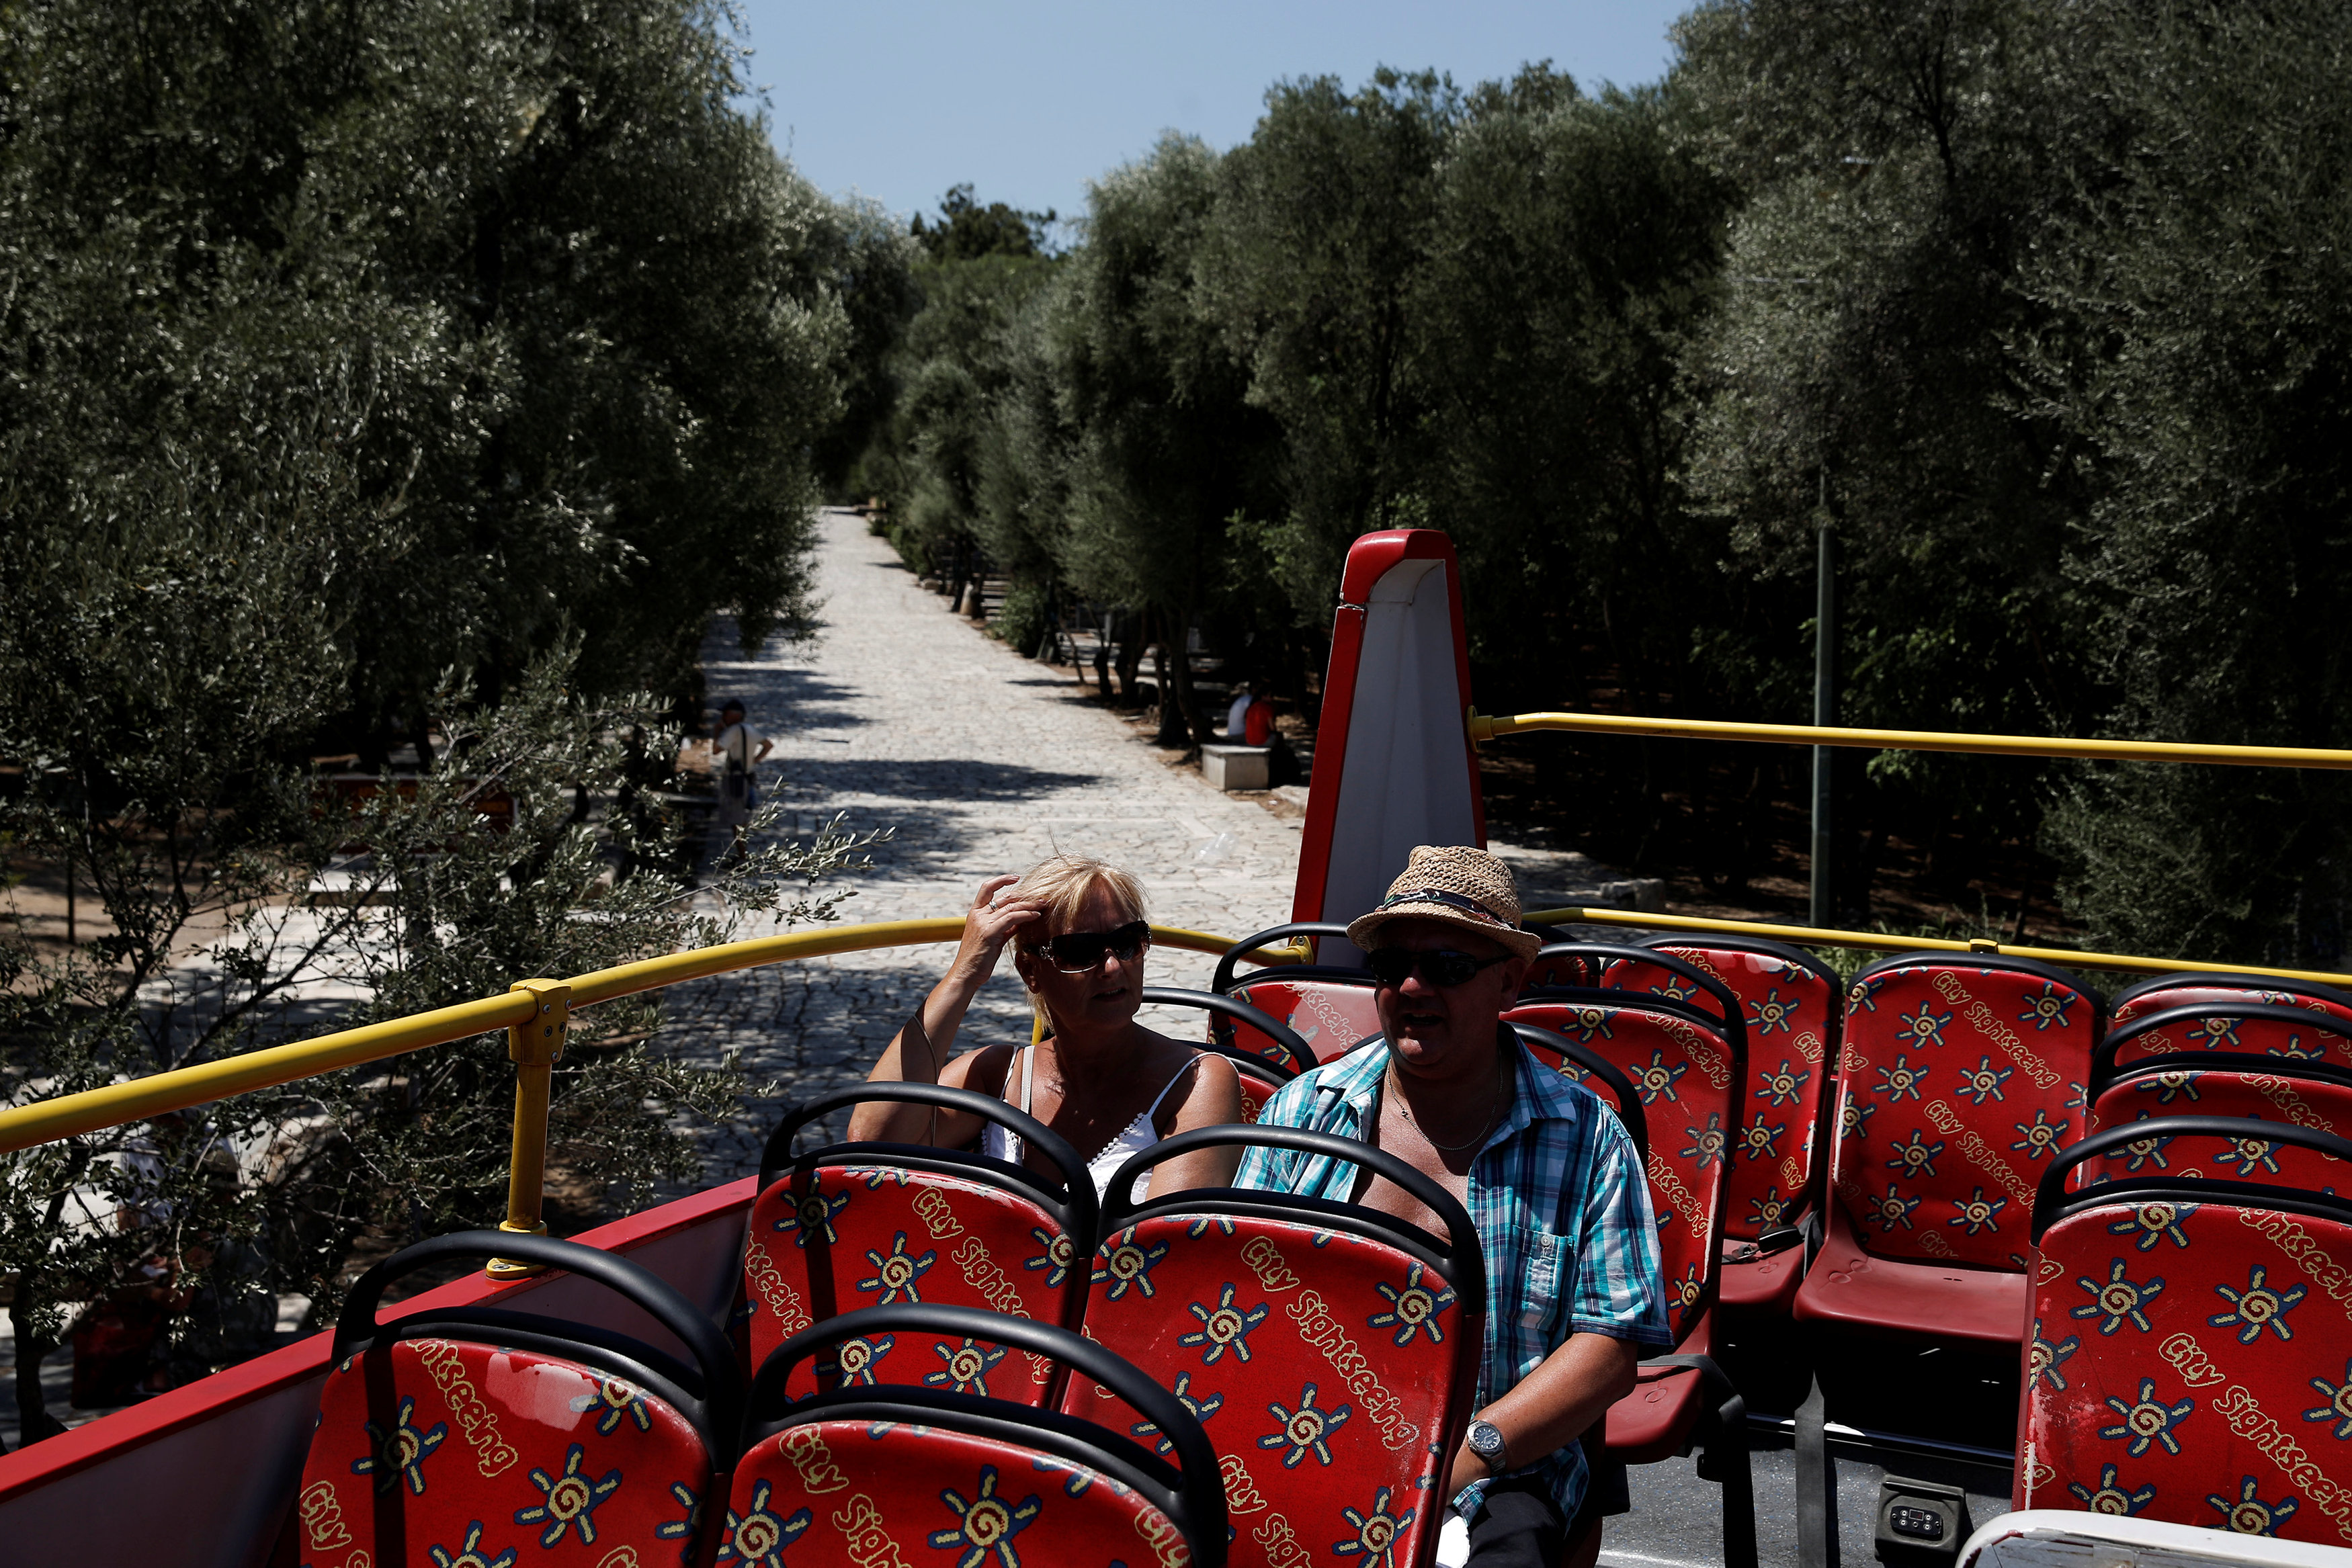 In pictures: Tourists visit Greece archaeological site of Acropolis hill